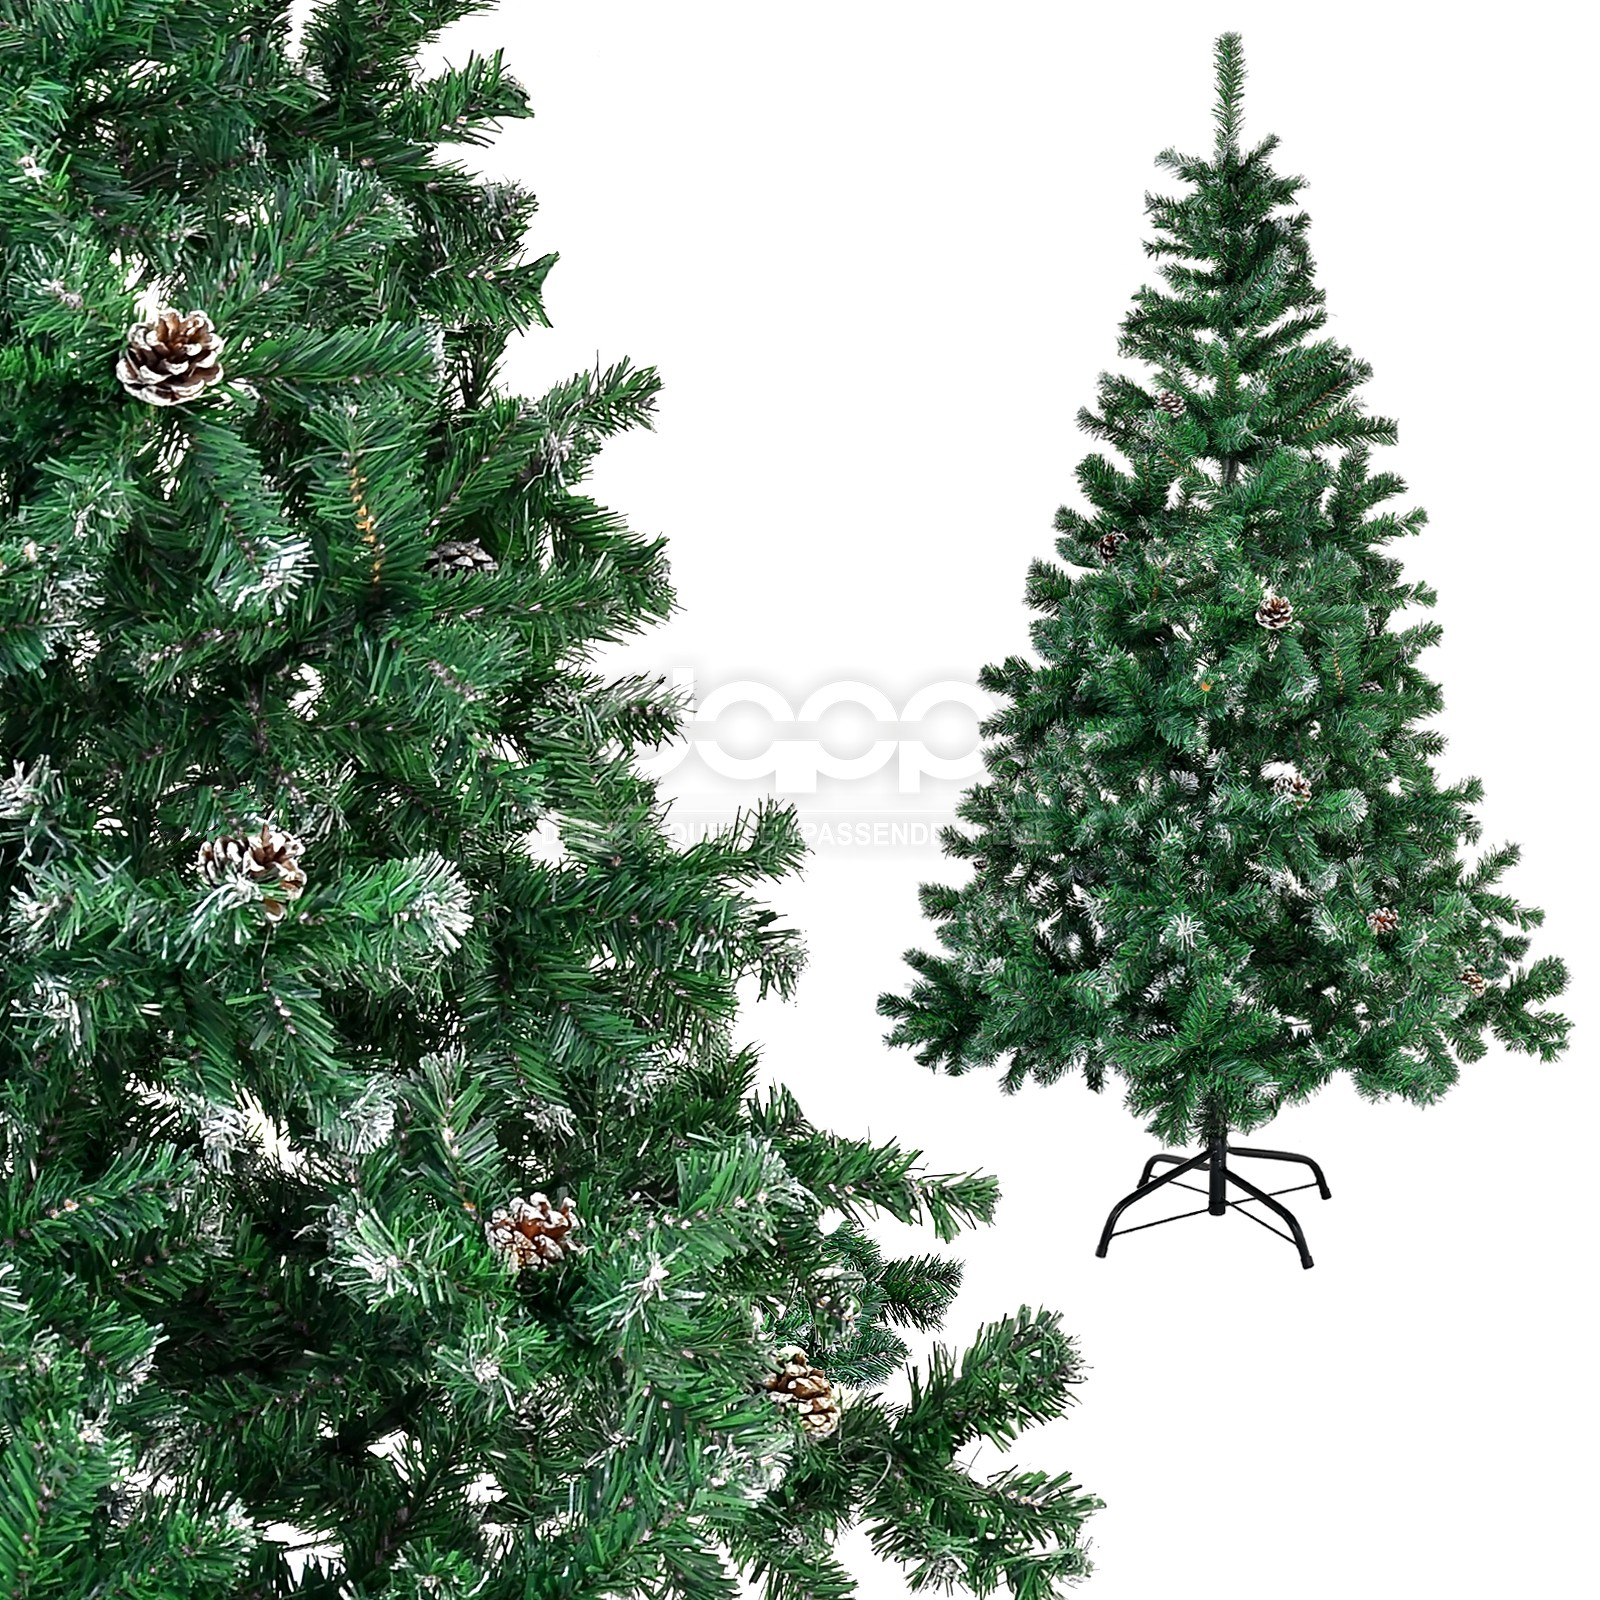 Beautiful christmas trees artificial 150 180cm xmas green white pine frost snow ebay - Tips to care for a natural christmas tree ...